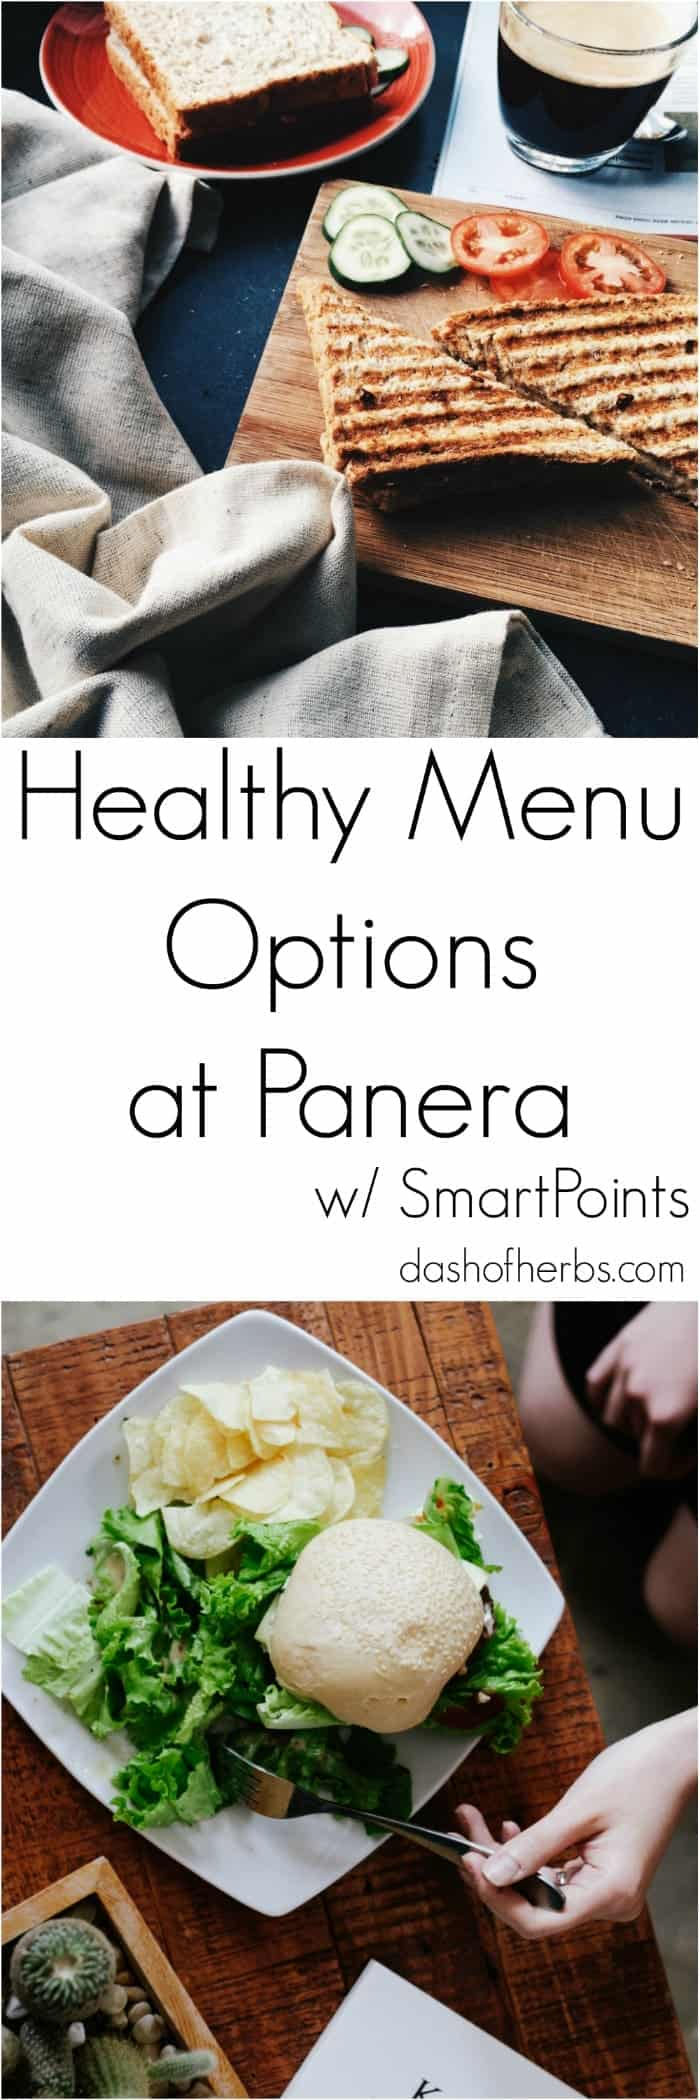 If you hate standing in line at Panera Bread wondering what to order that will be within your Weight Watchers SmartPoints, look no further.  This guide gives you the healthy menu options at Panera Bread with SmartPoints for each item so that you can easily decide what you want to eat.